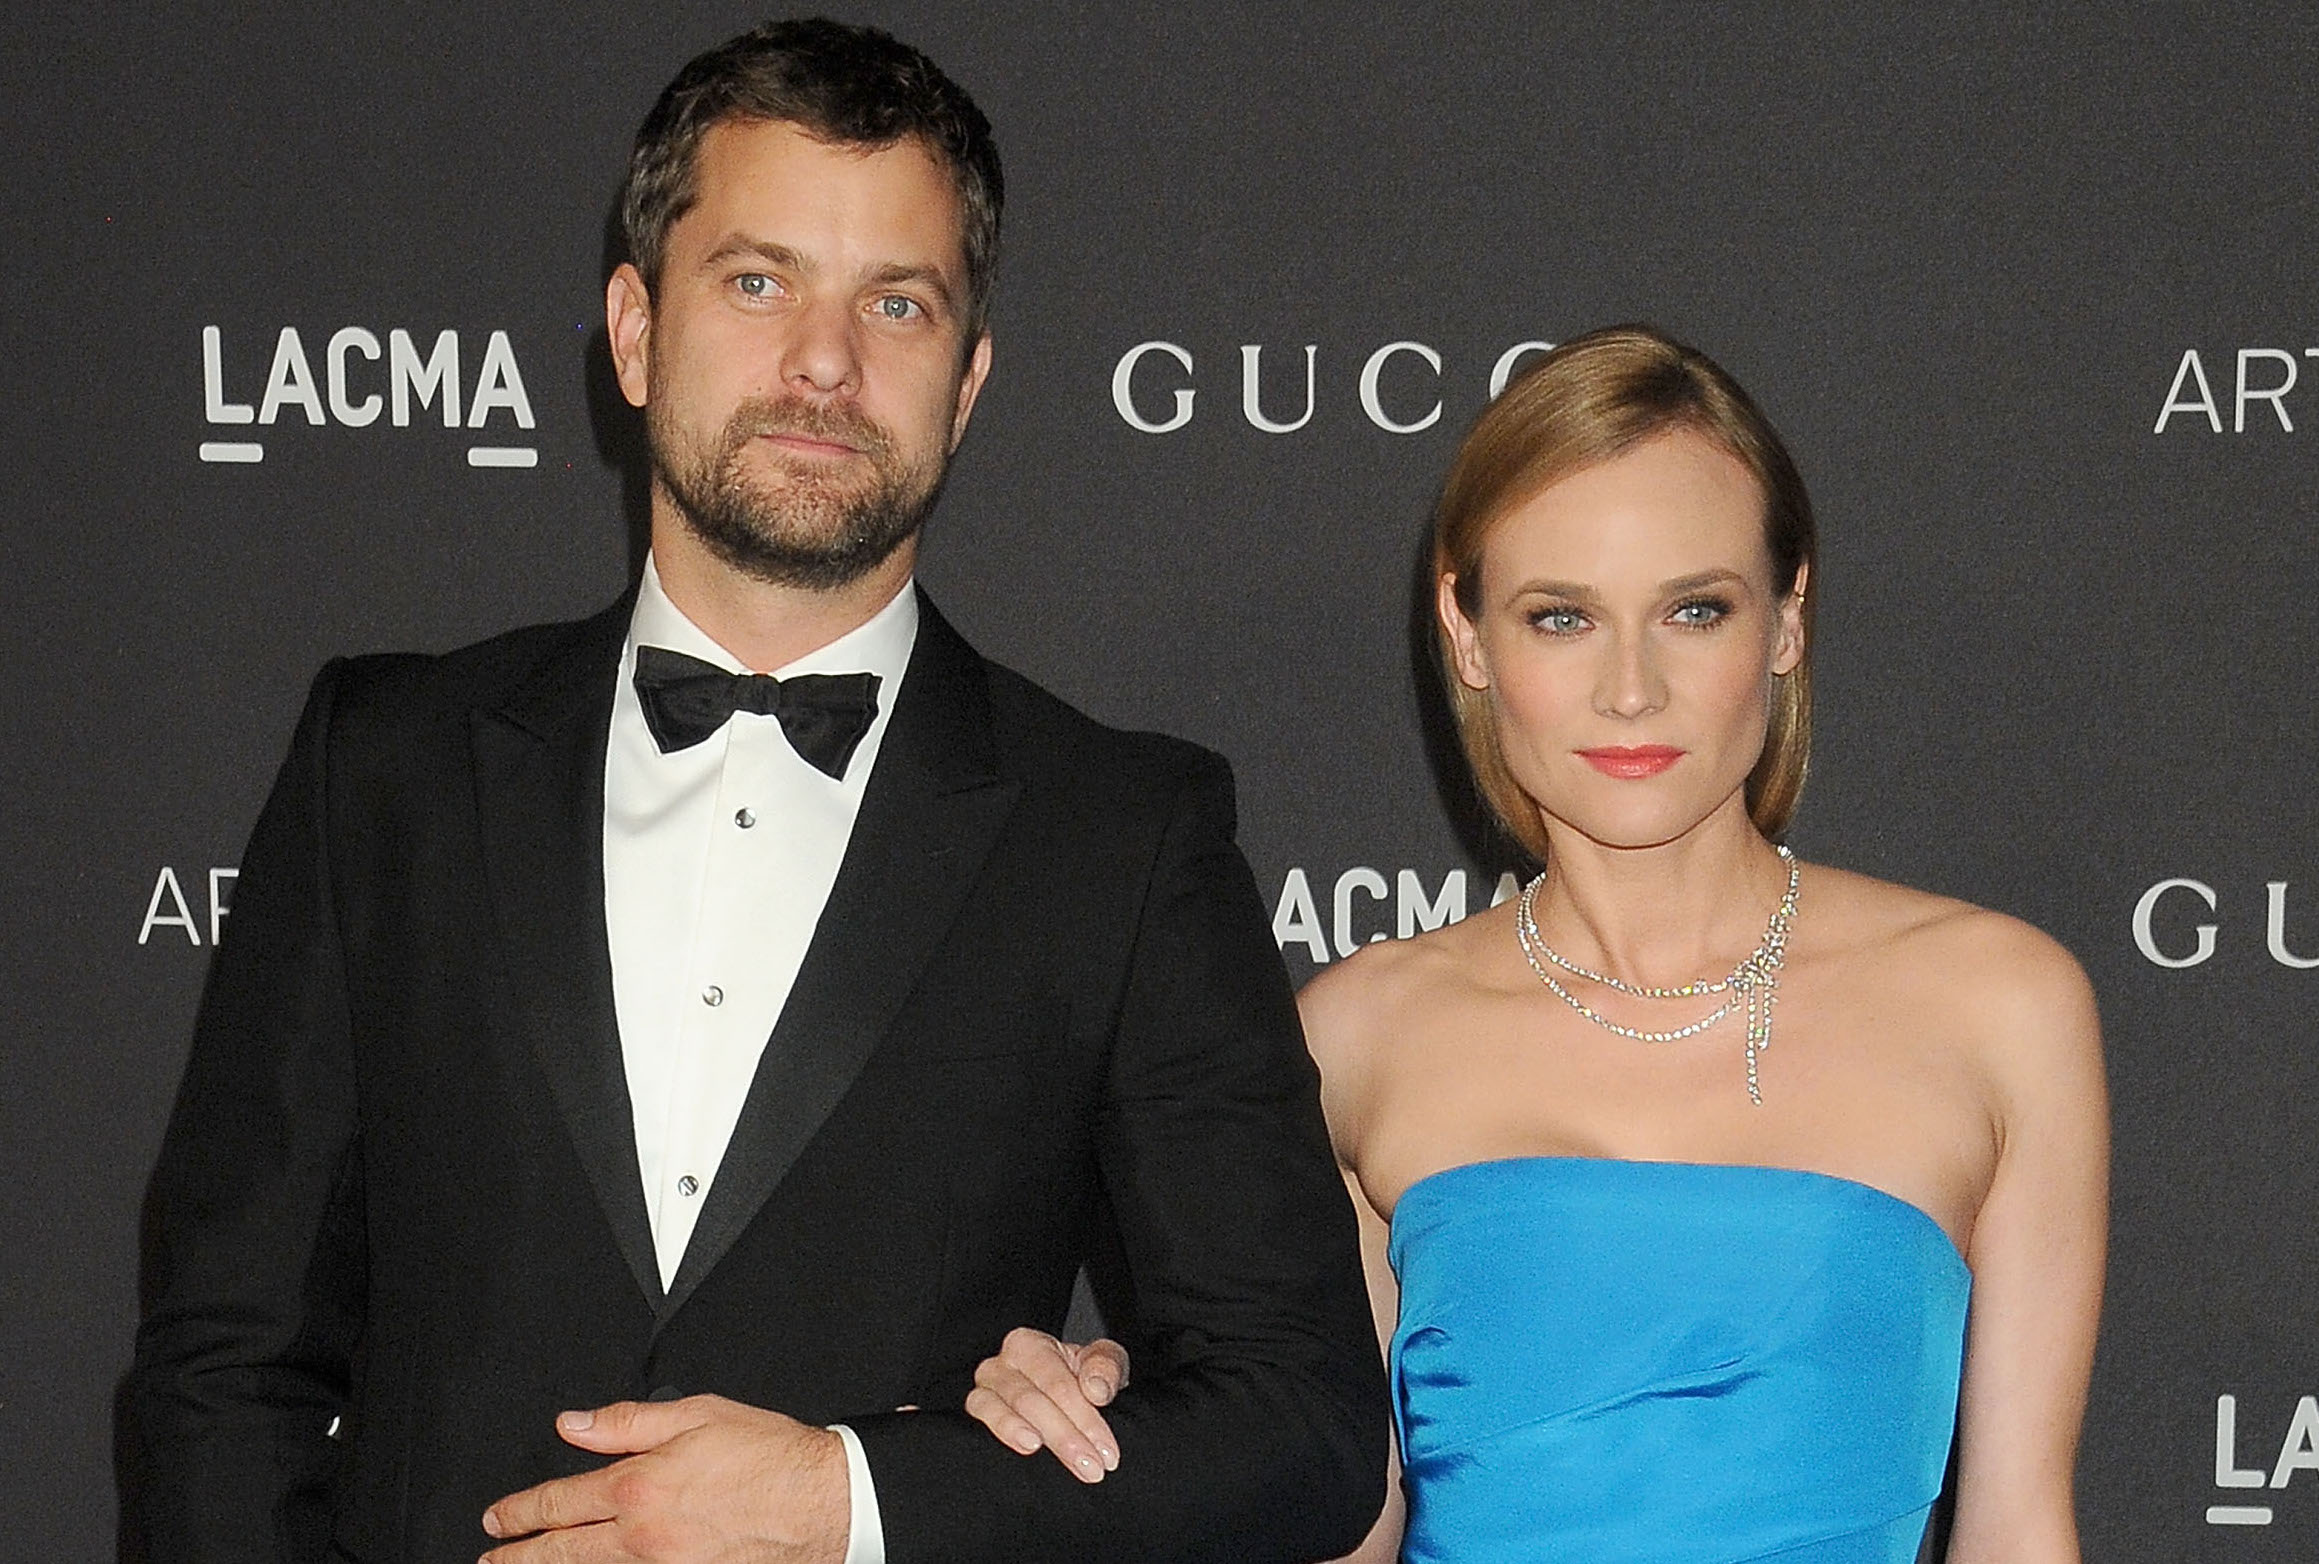 Joshua Jackson opens up about dating since his split with Diane Kruger